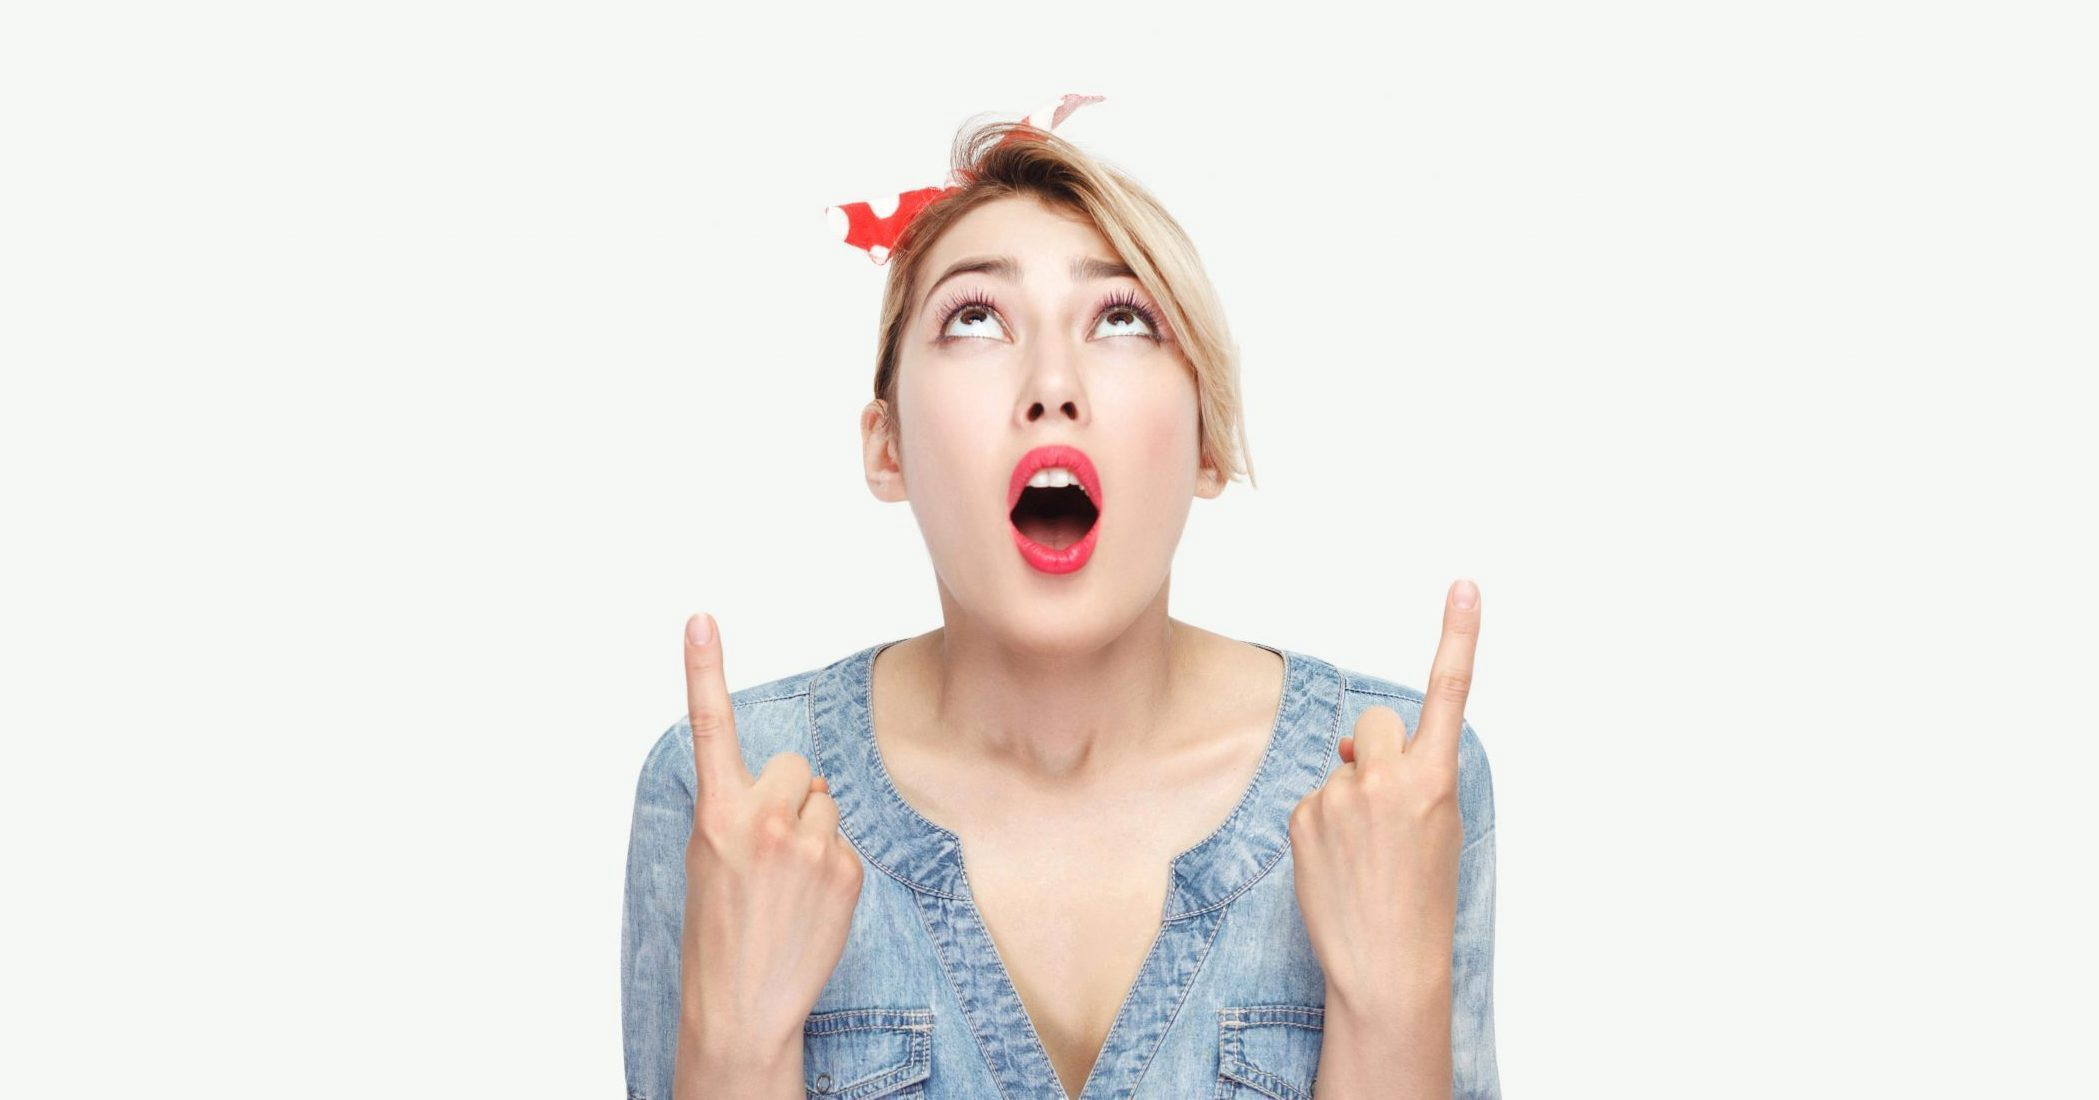 Woman with mouth open in surprise, her hands raised with fingers pointing up